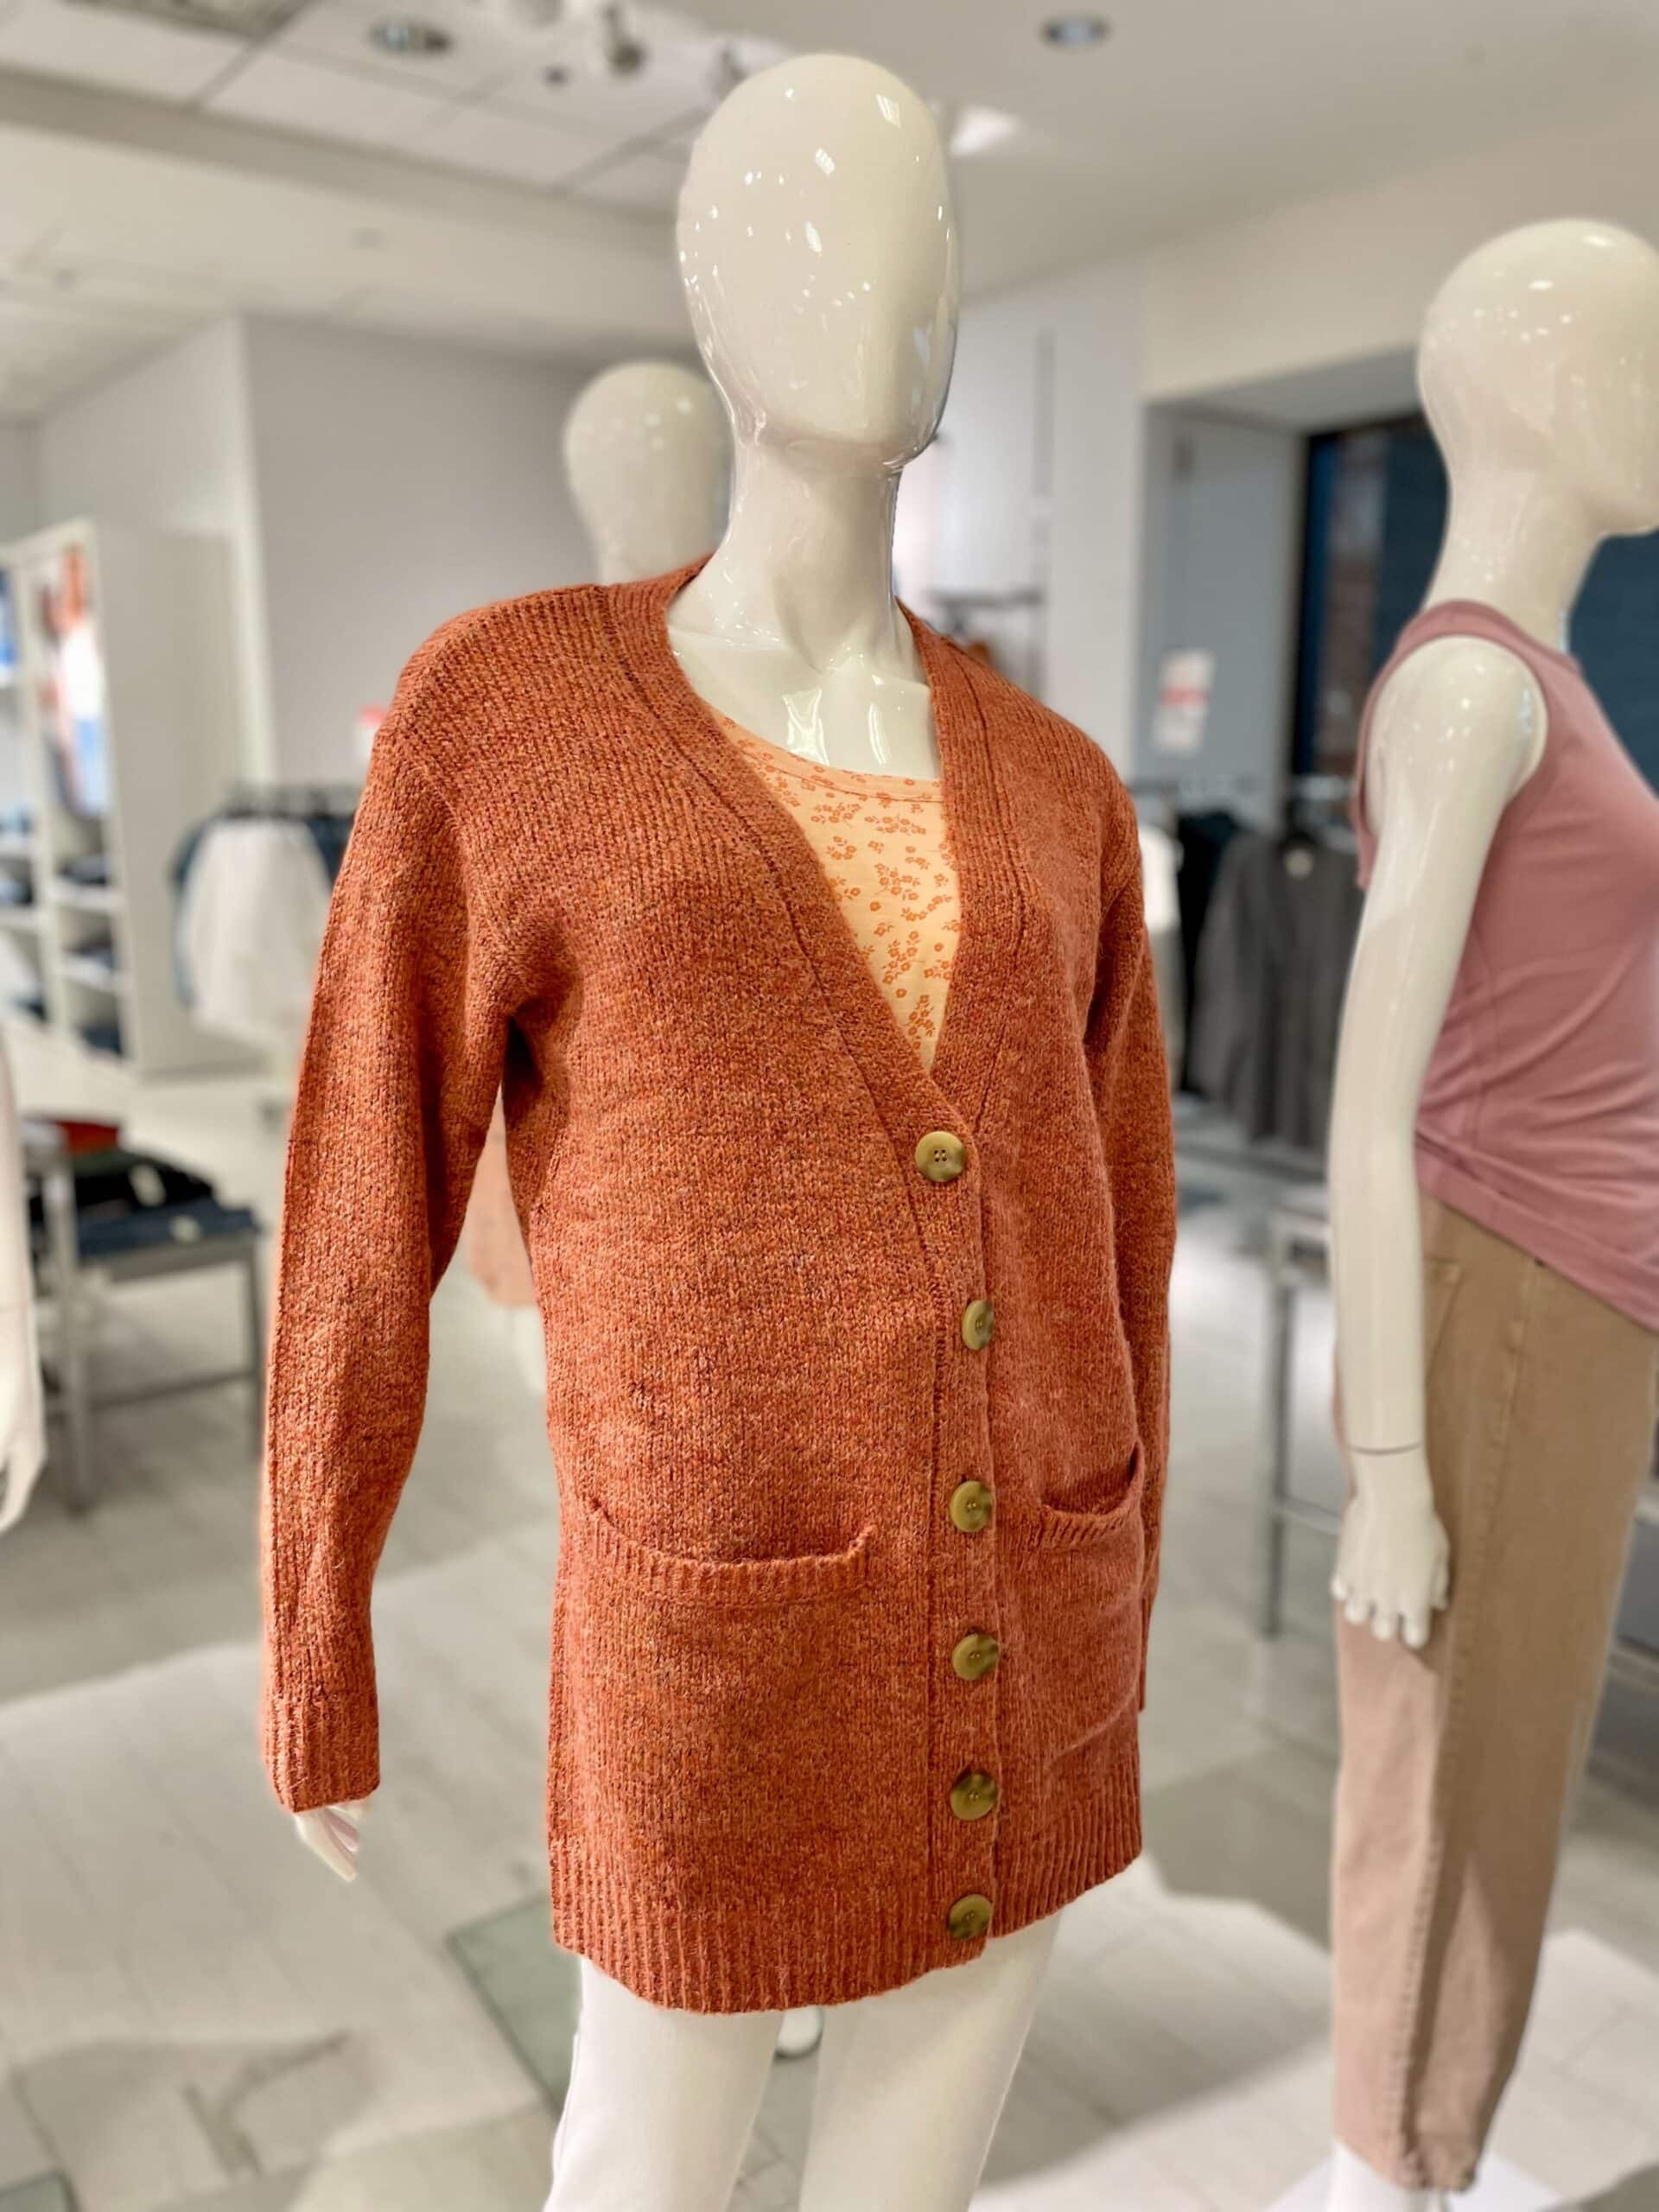 jcpenney fall clothes